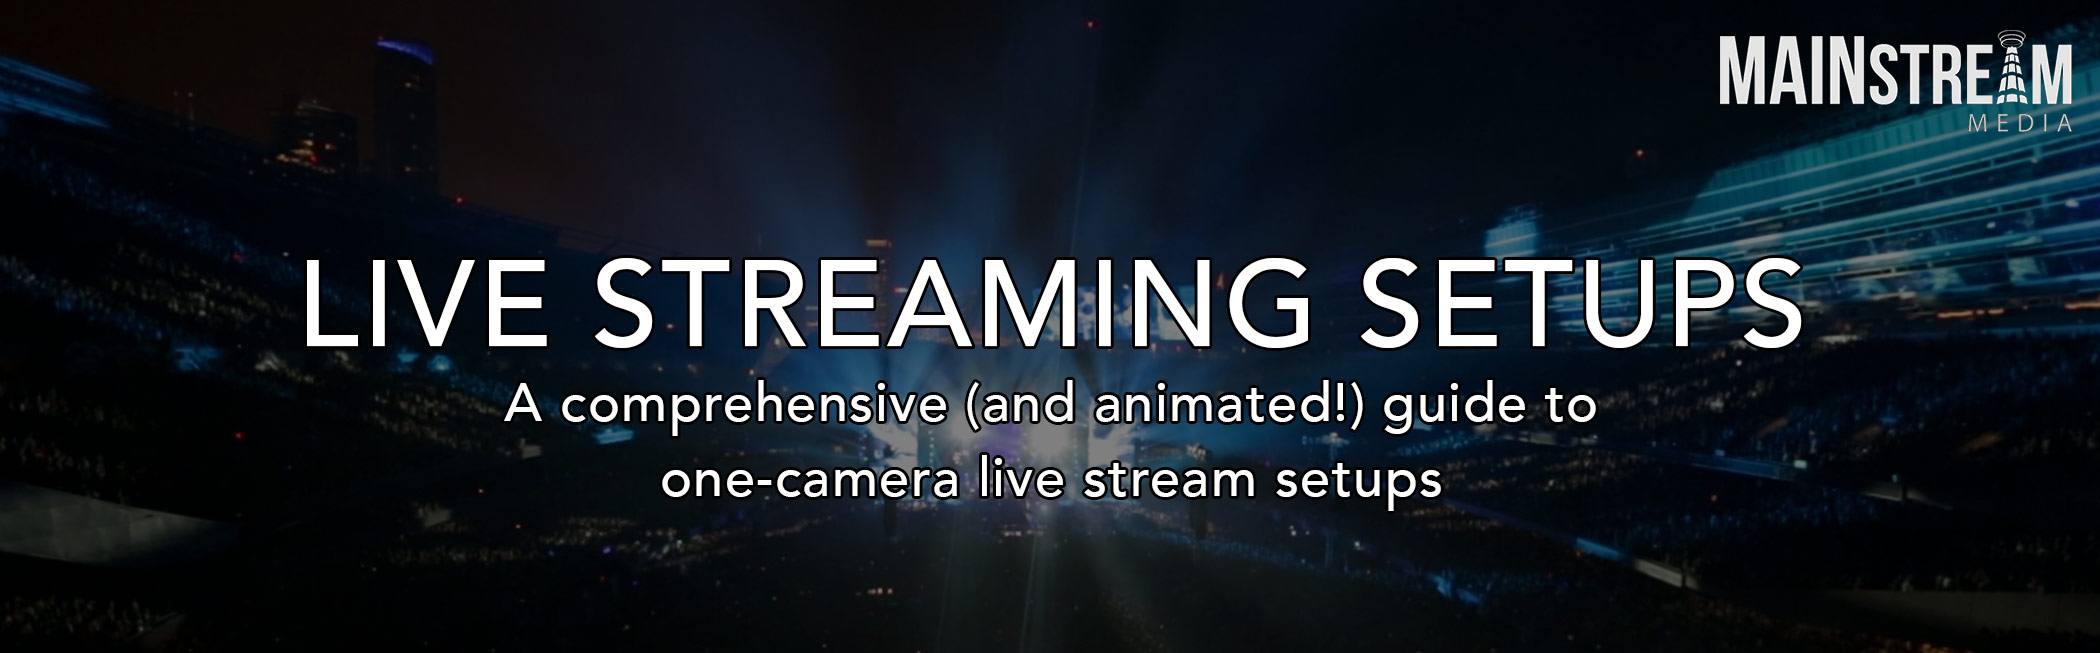 A Comprehensive (And Animated!) Guide to Live Streaming Setups